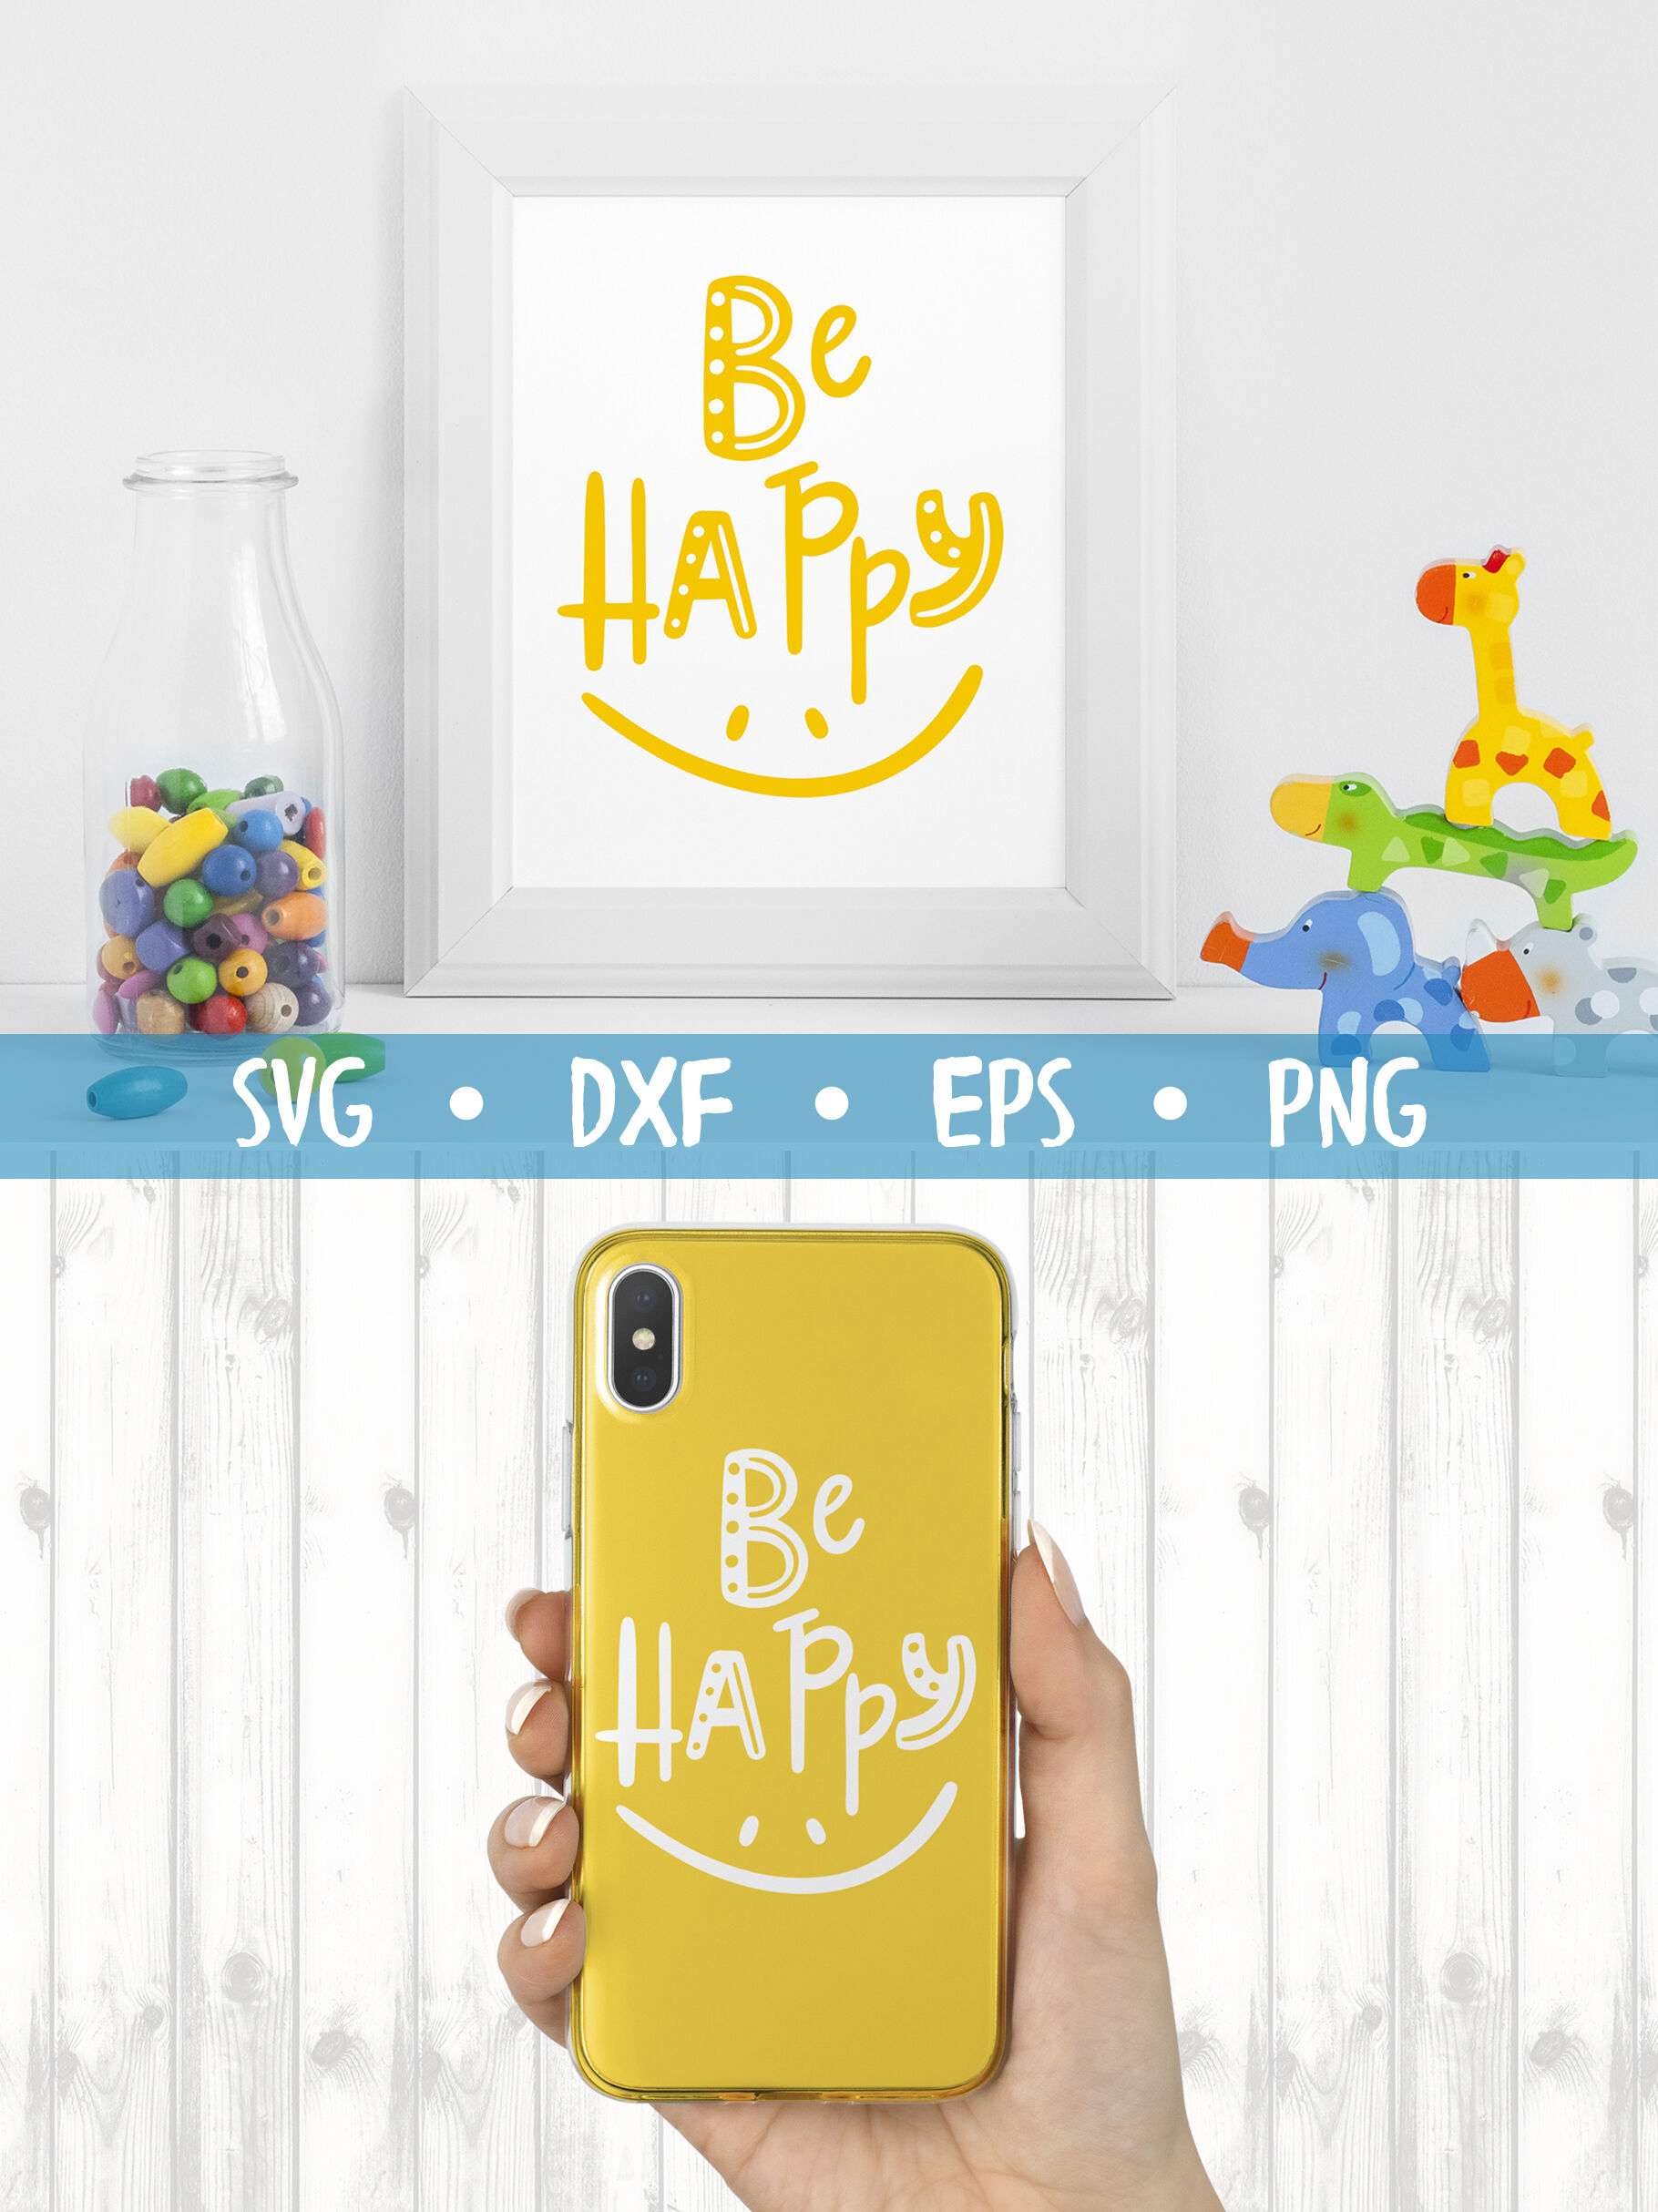 Be Happy Svg Cut File By Milkimil Thehungryjpeg Com